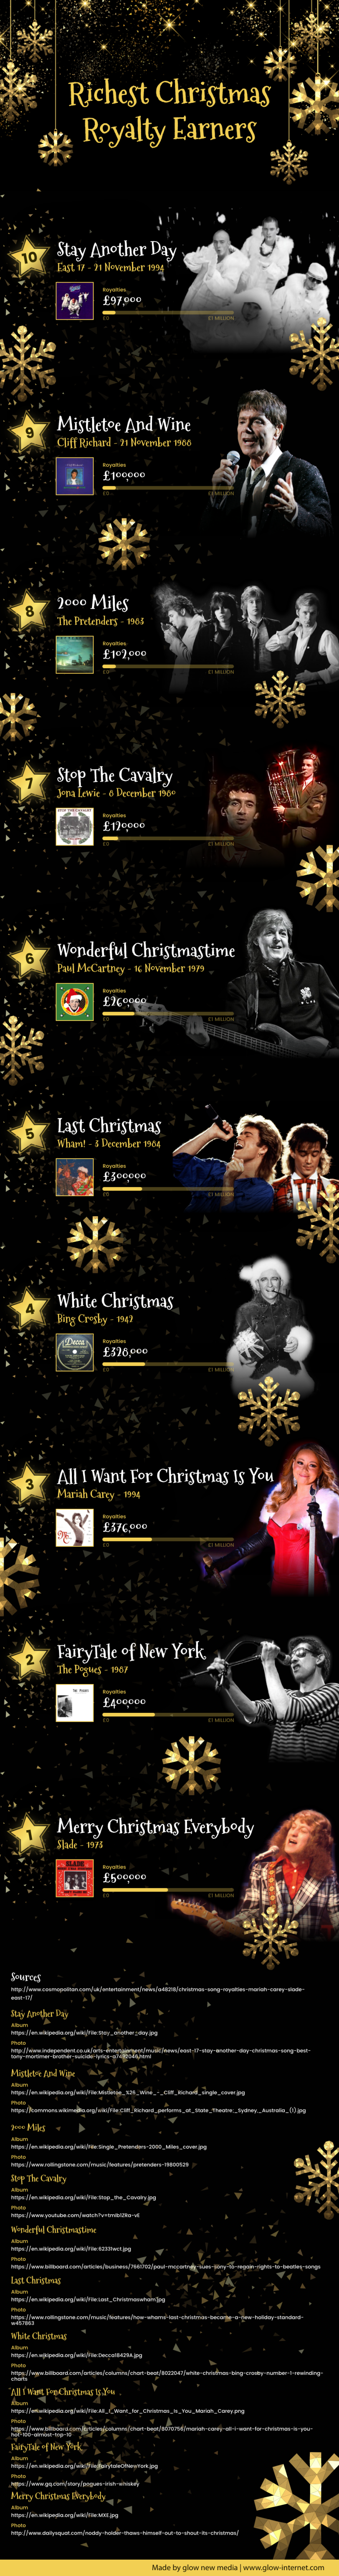 Richest Christmas Royalty Earners